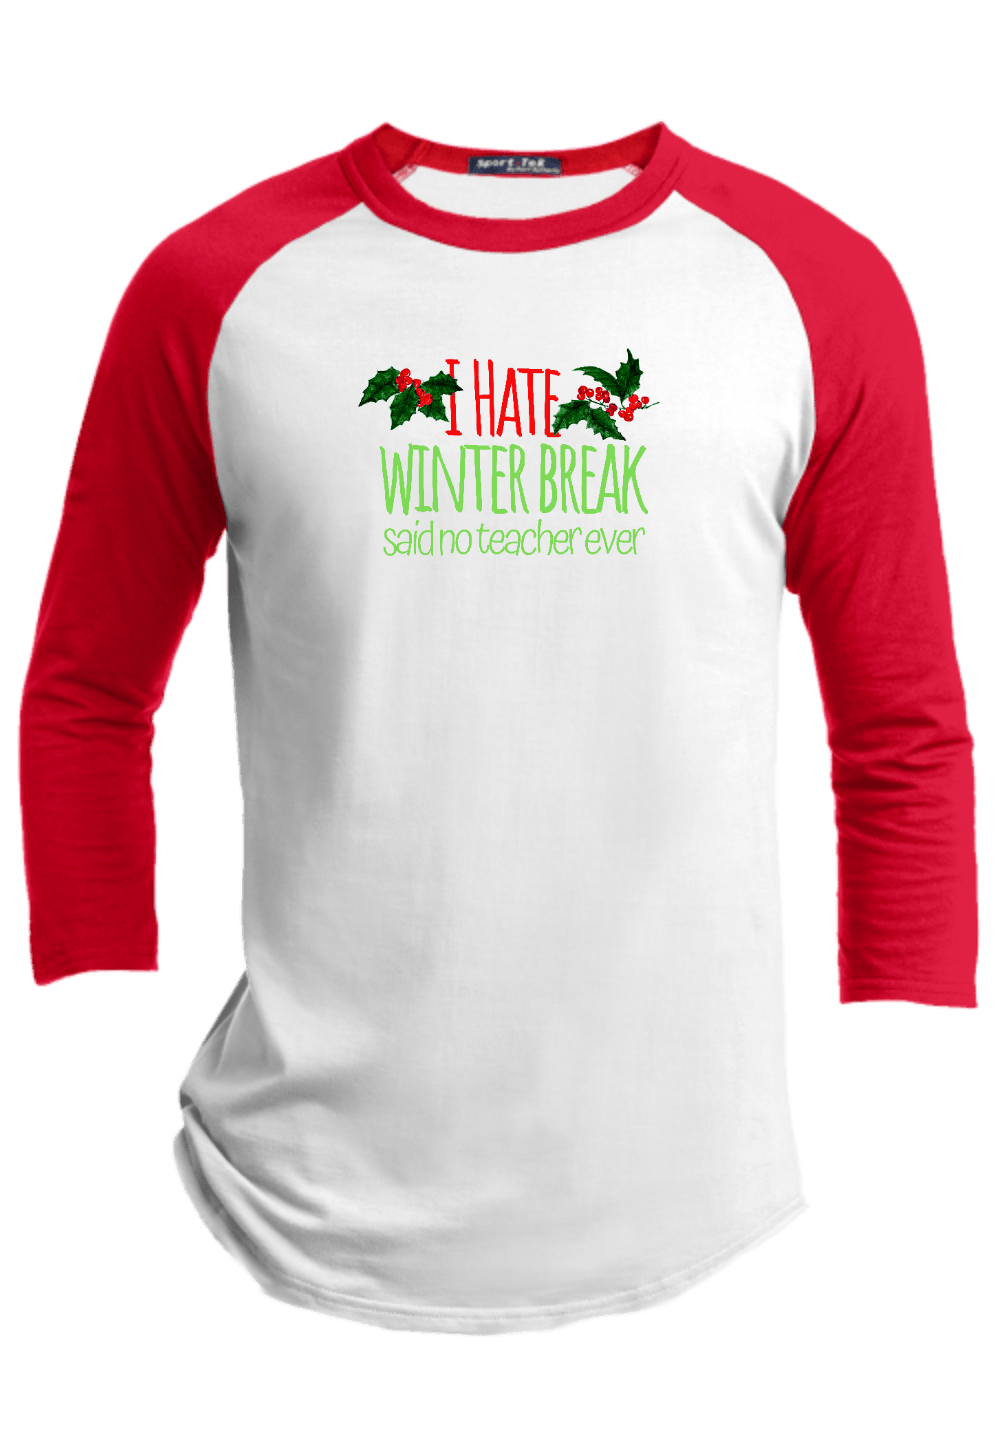 I Hate Winter Break said no Teacher Ever Christmas Raglan